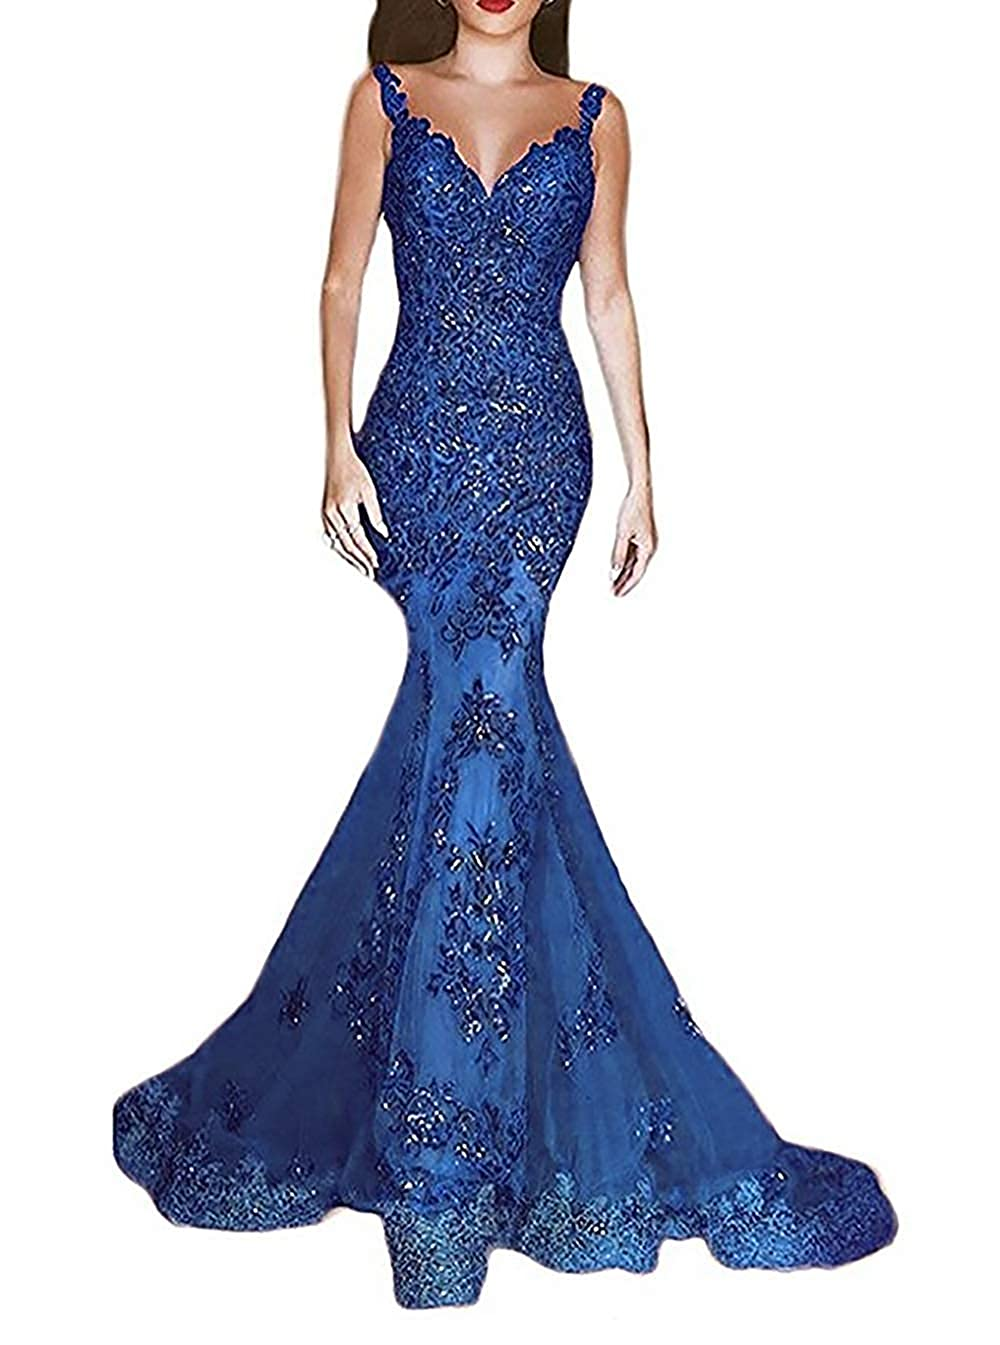 Dark bluee ASBridal Lace Evening Dress Mermaid Prom Dresses Long Sequin Formal Party Evening Gowns Sheer Back